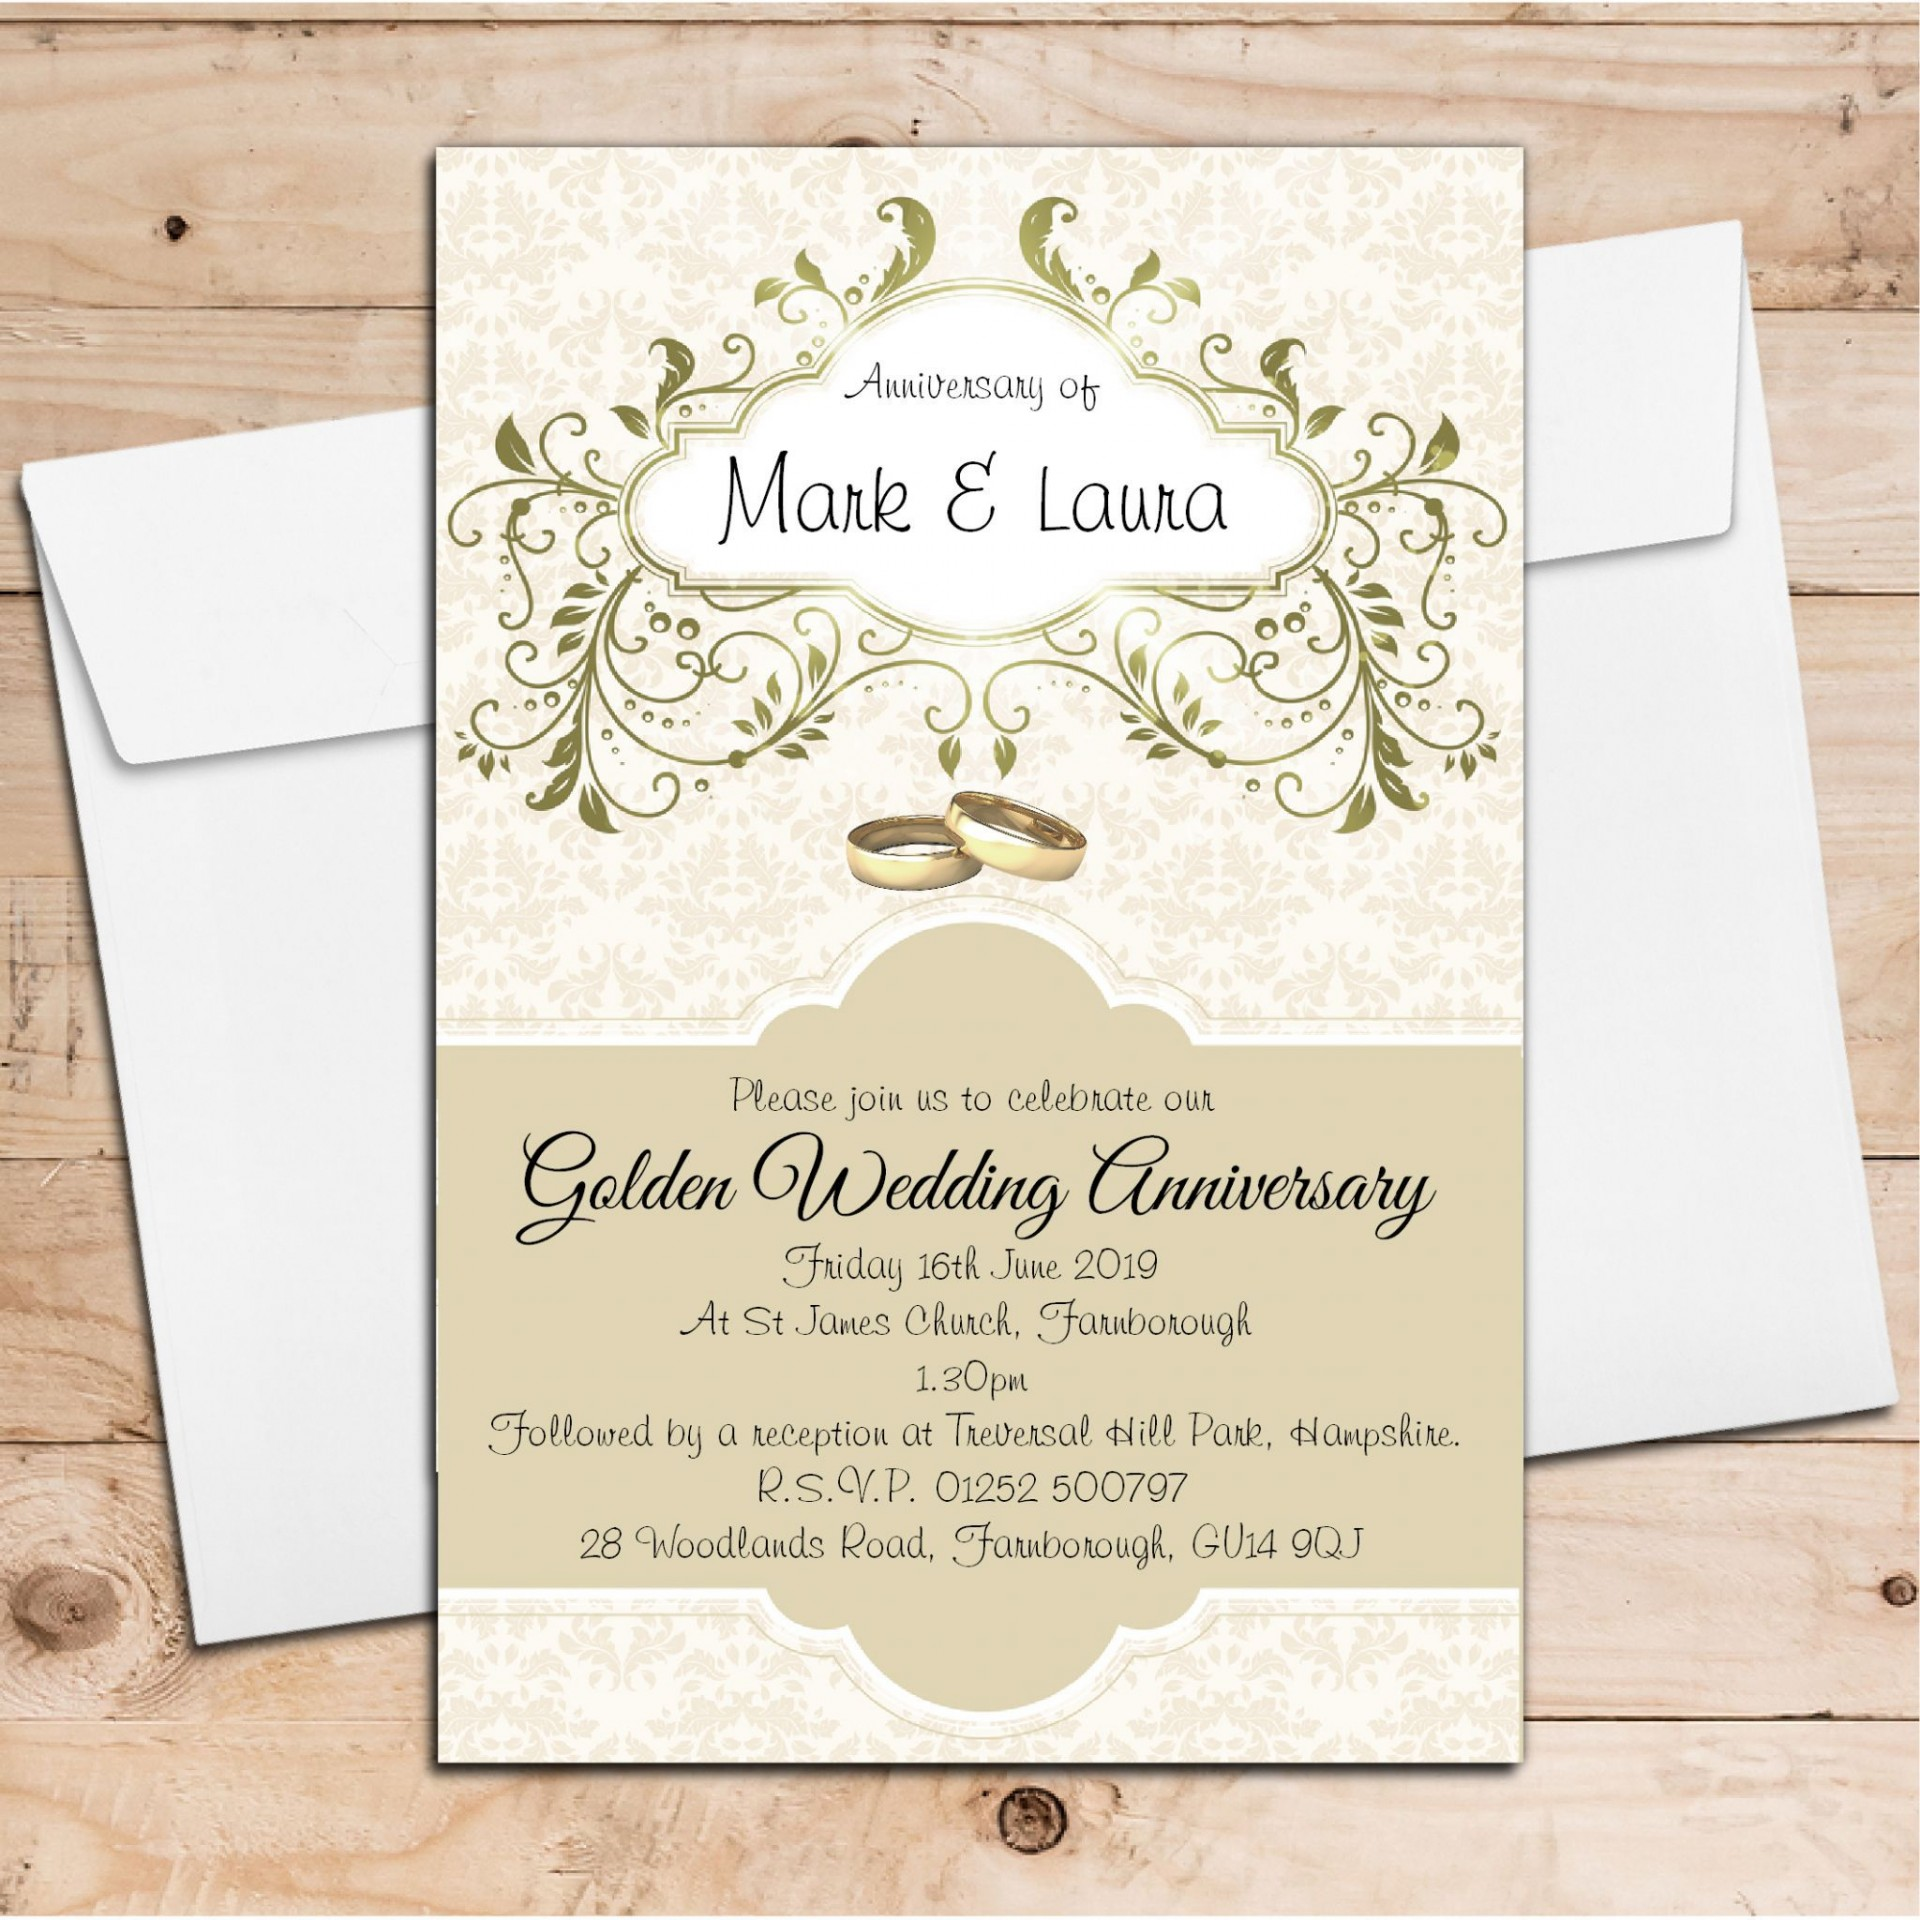 000 Unbelievable 50th Wedding Anniversary Invitation Design Highest Quality  Designs Wording Sample Card Template Free Download1920